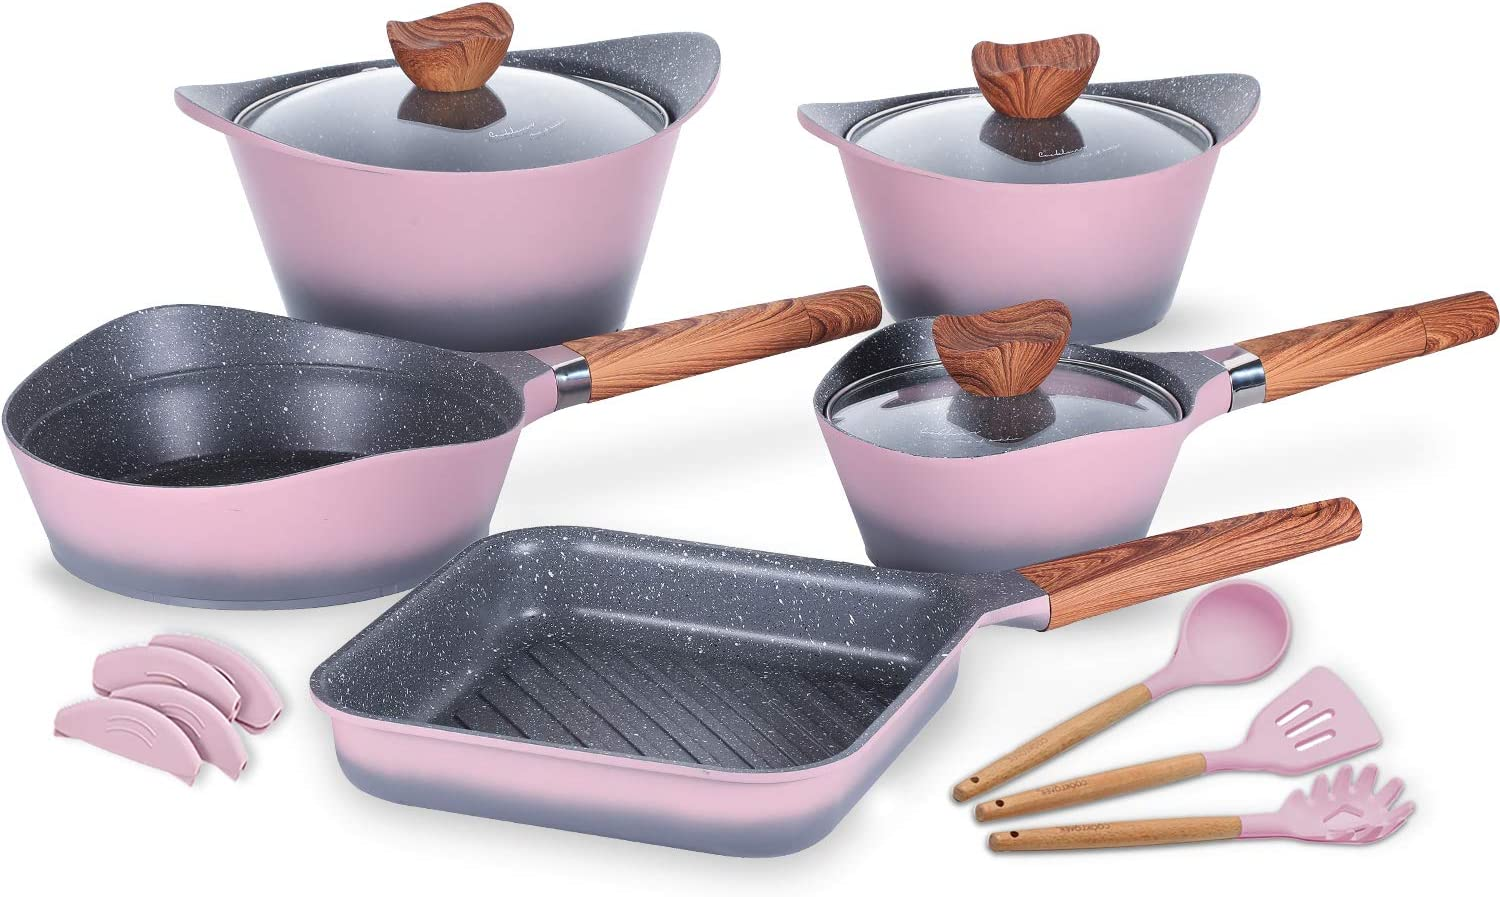 Nonstick Cookware Set Dishwasher Safe 100% PFOA Free Aluminum Induction Pots and Pans Set with Cooking Utensils- 15 - Piece - Pink